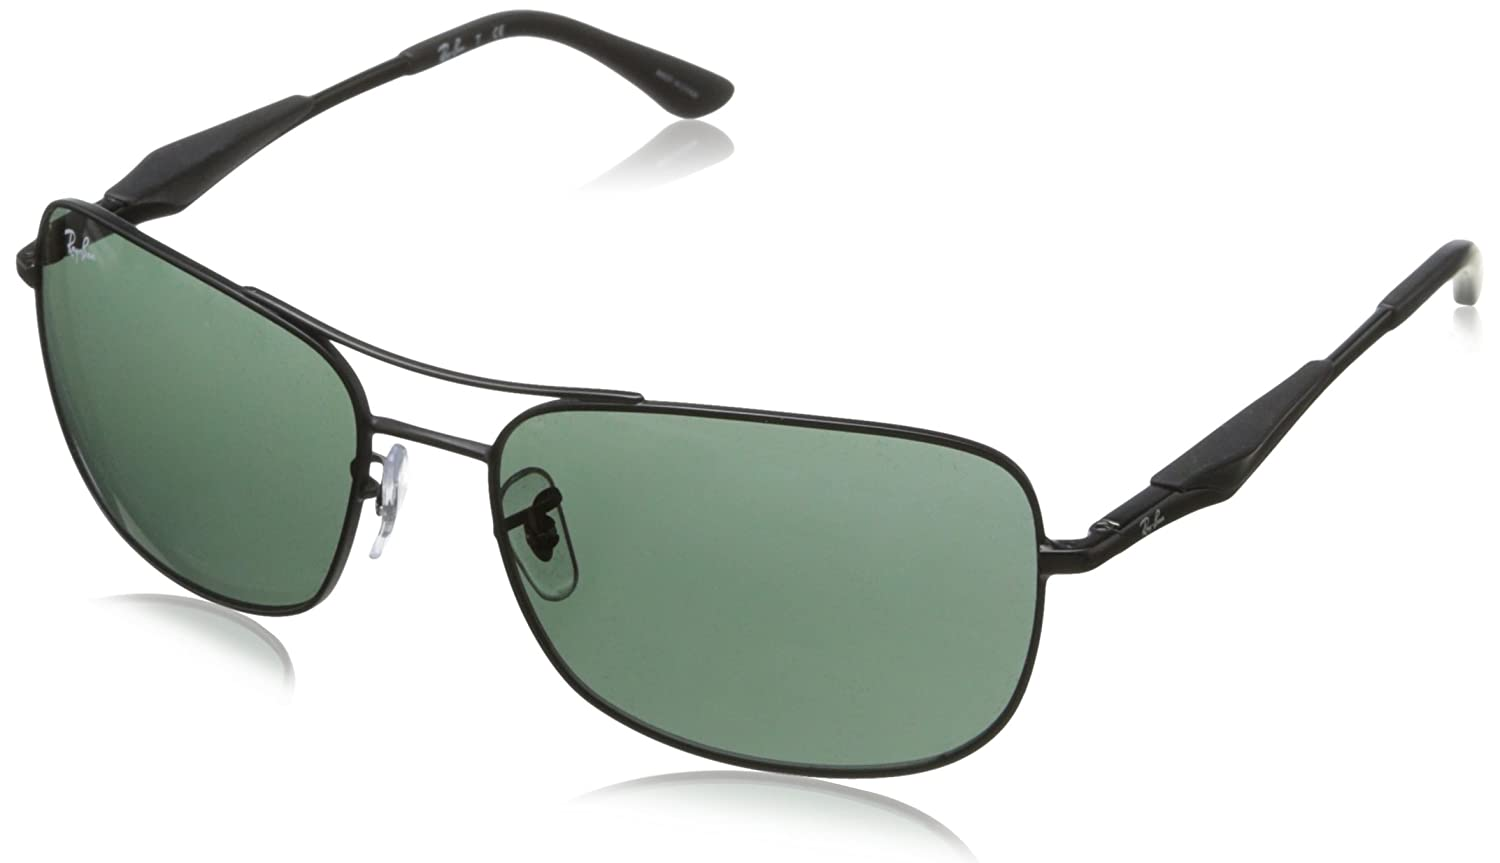 474528133f Amazon.com  Ray-Ban STEEL MAN SUNGLASS - MATTE BLACK Frame GREEN Lenses  61mm Non-Polarized  Clothing